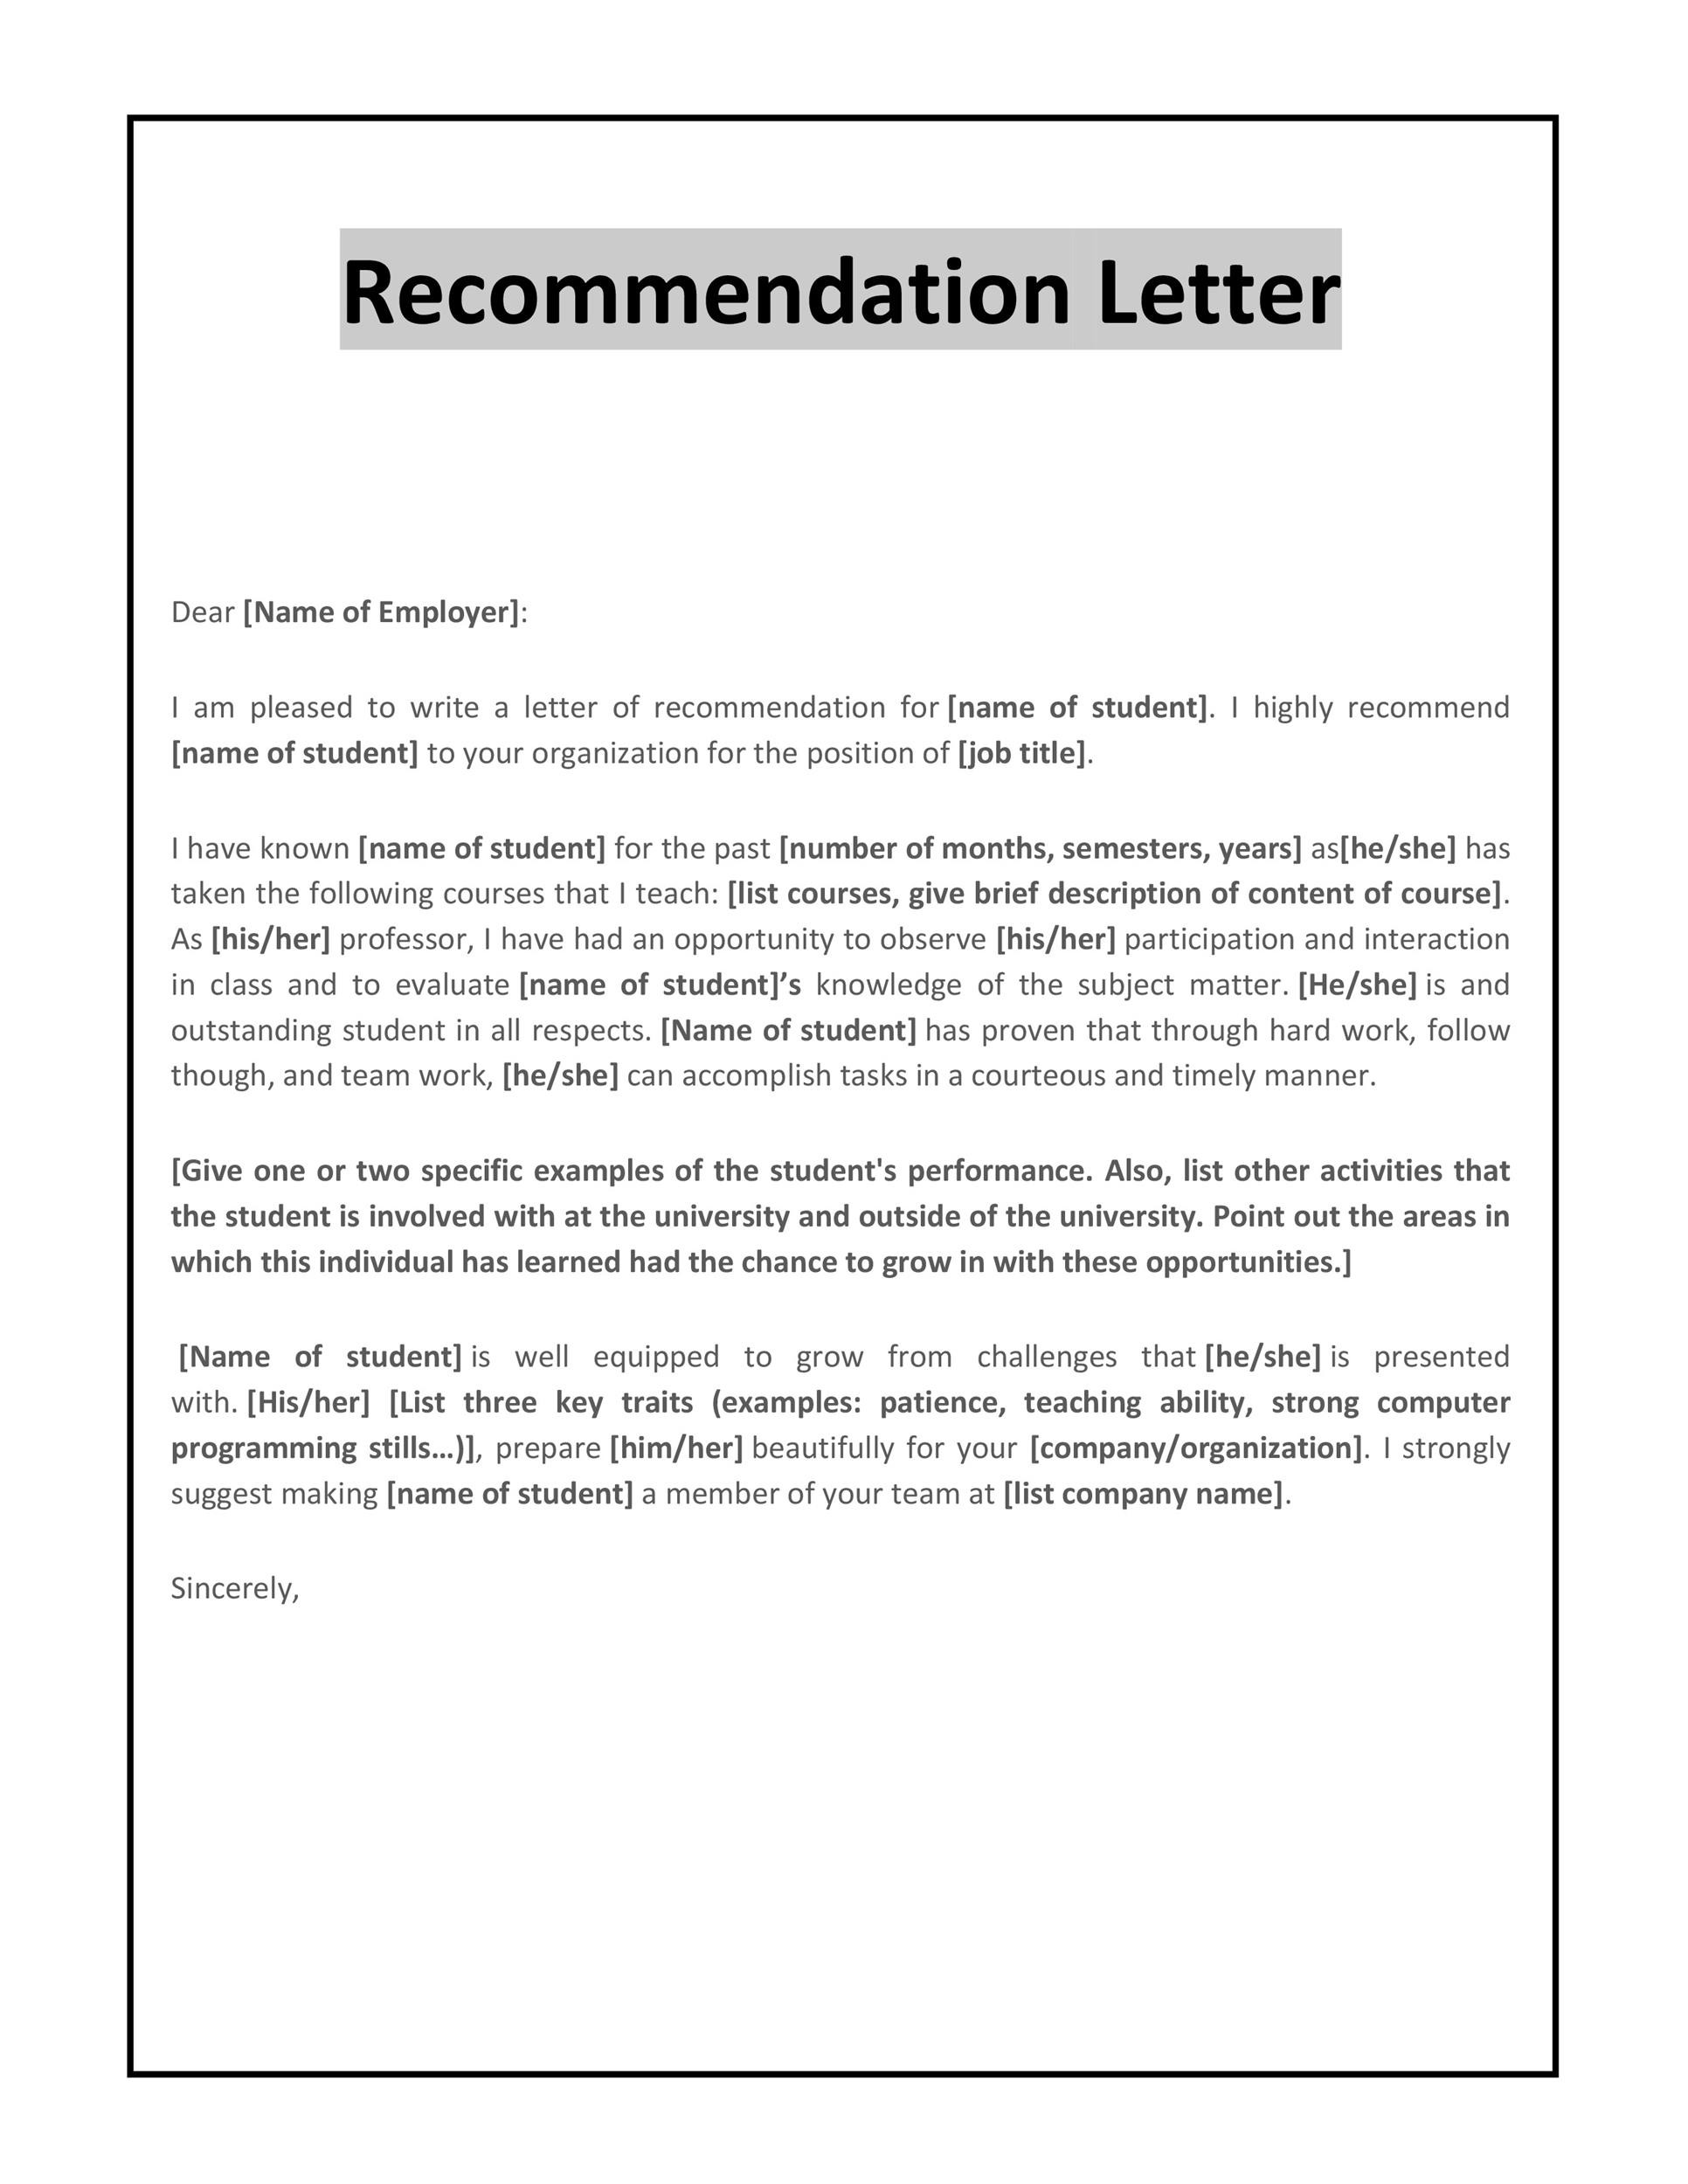 Free Letter of Recommendation Templates - Samples and ...